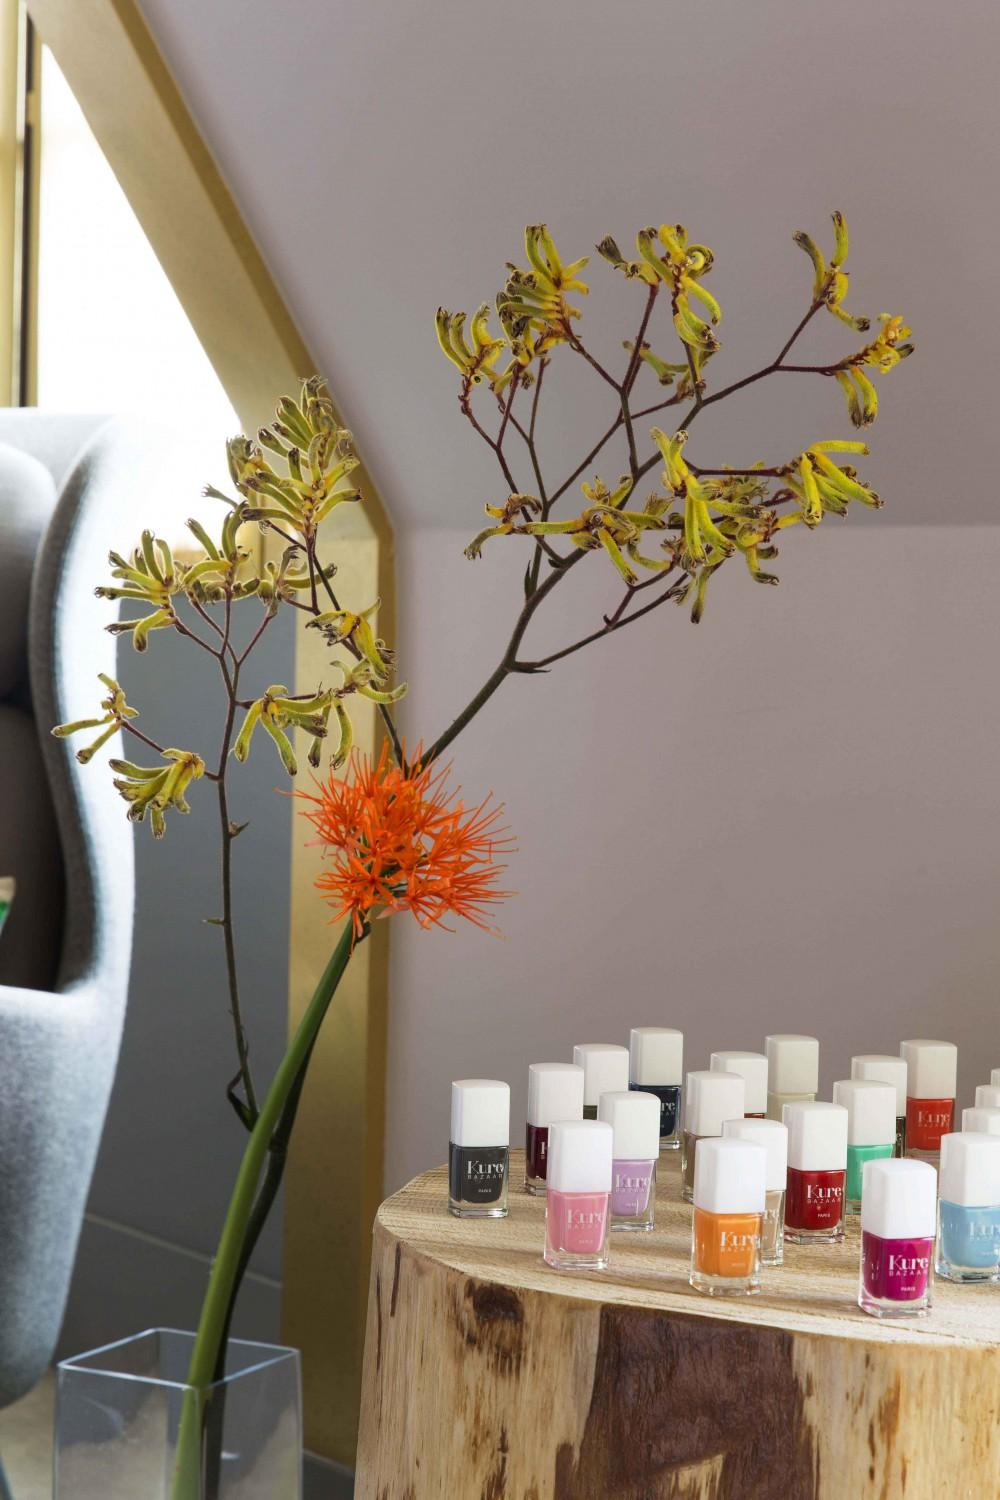 6 - Suite 601 - Nail Suite by Kure Bazaar - Park Hyatt Paris Vendome